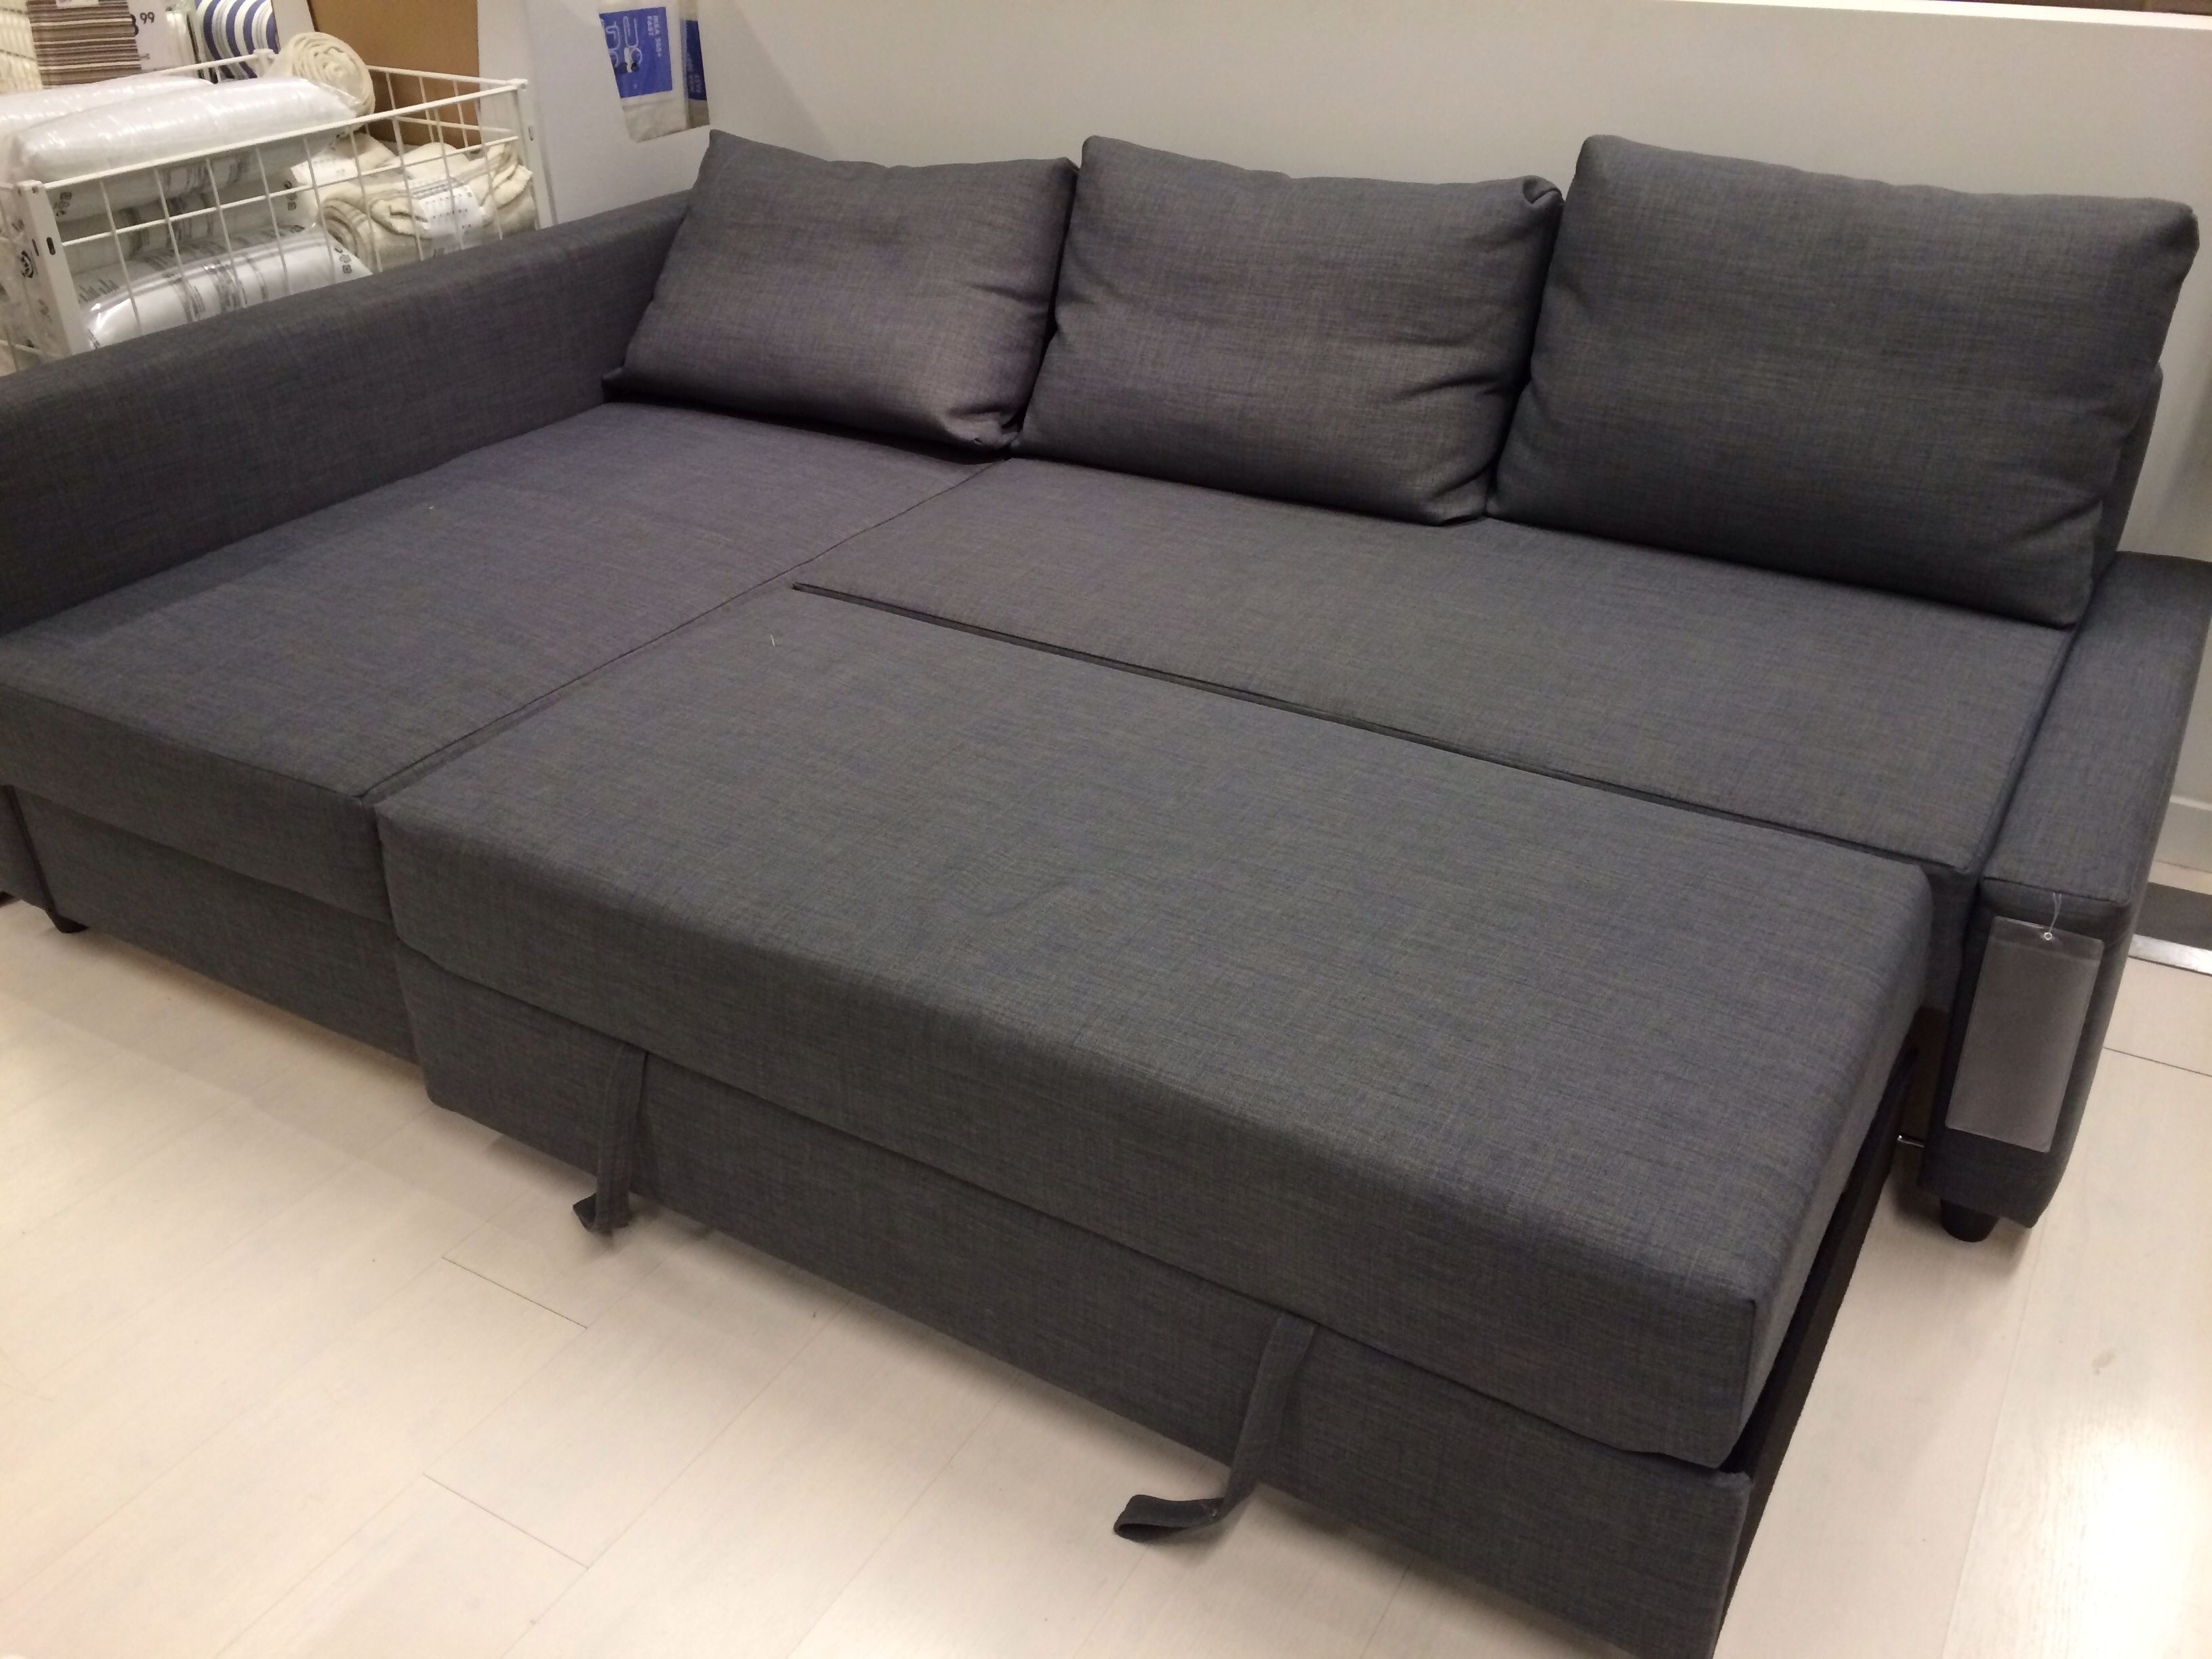 FRIHETEN Corner Sofa Bed (Skiftebo Dark Grey)   IKEA